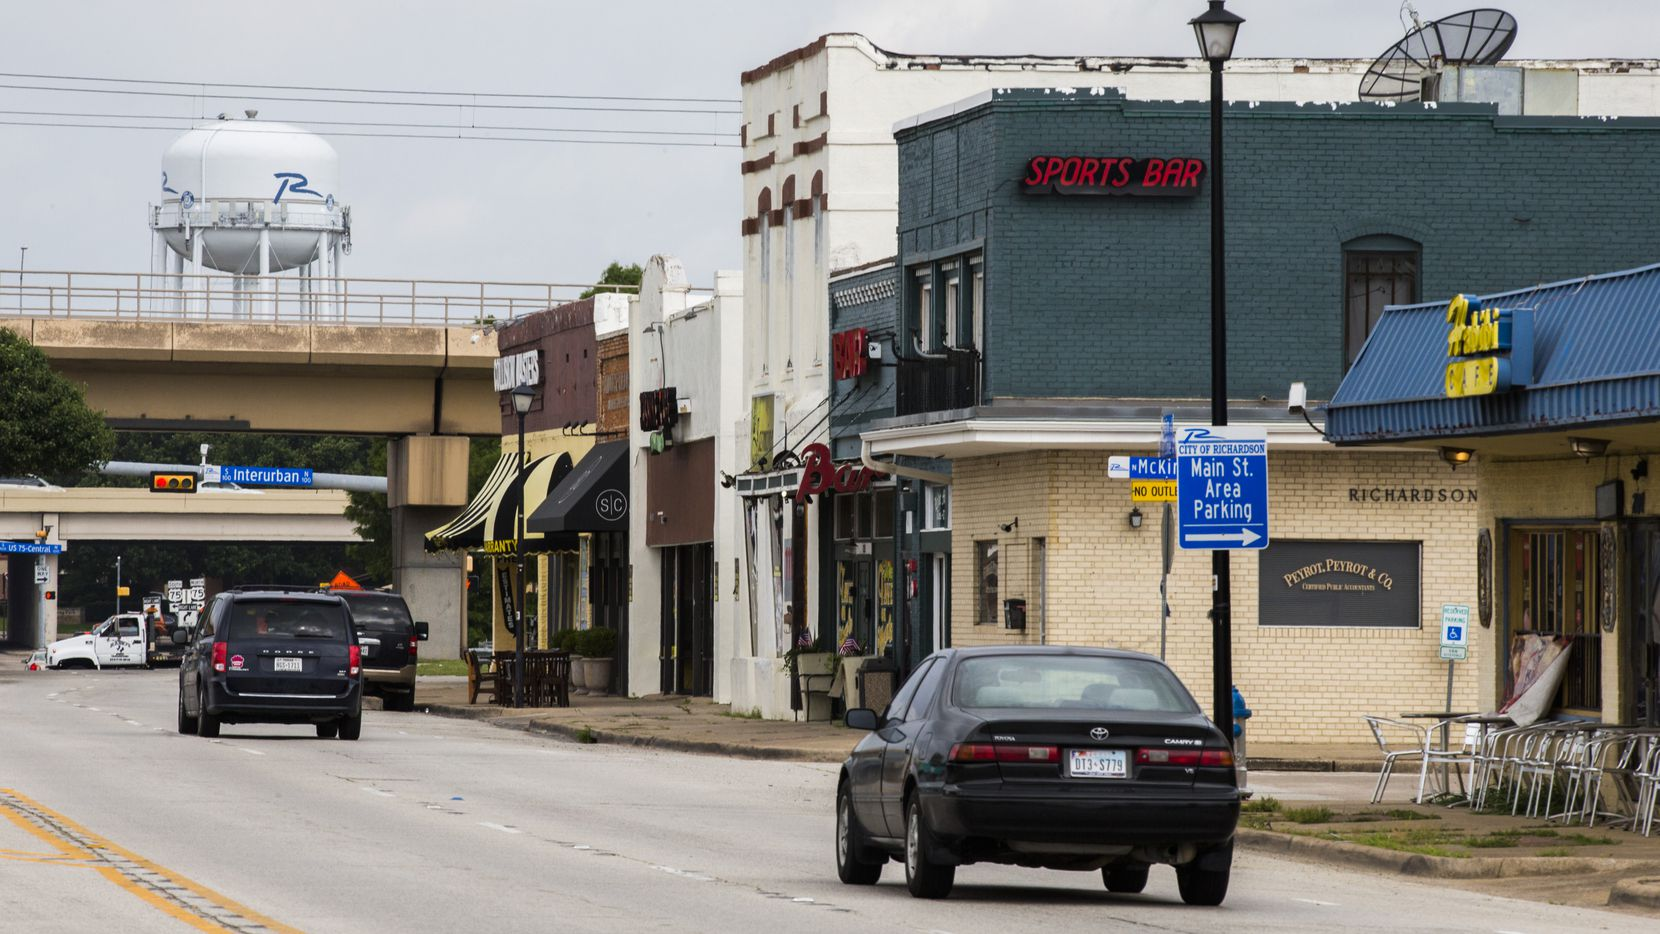 Vehicles drive through the 100 block of East Main Street in old downtown Richardson, an area set for redevelopment.